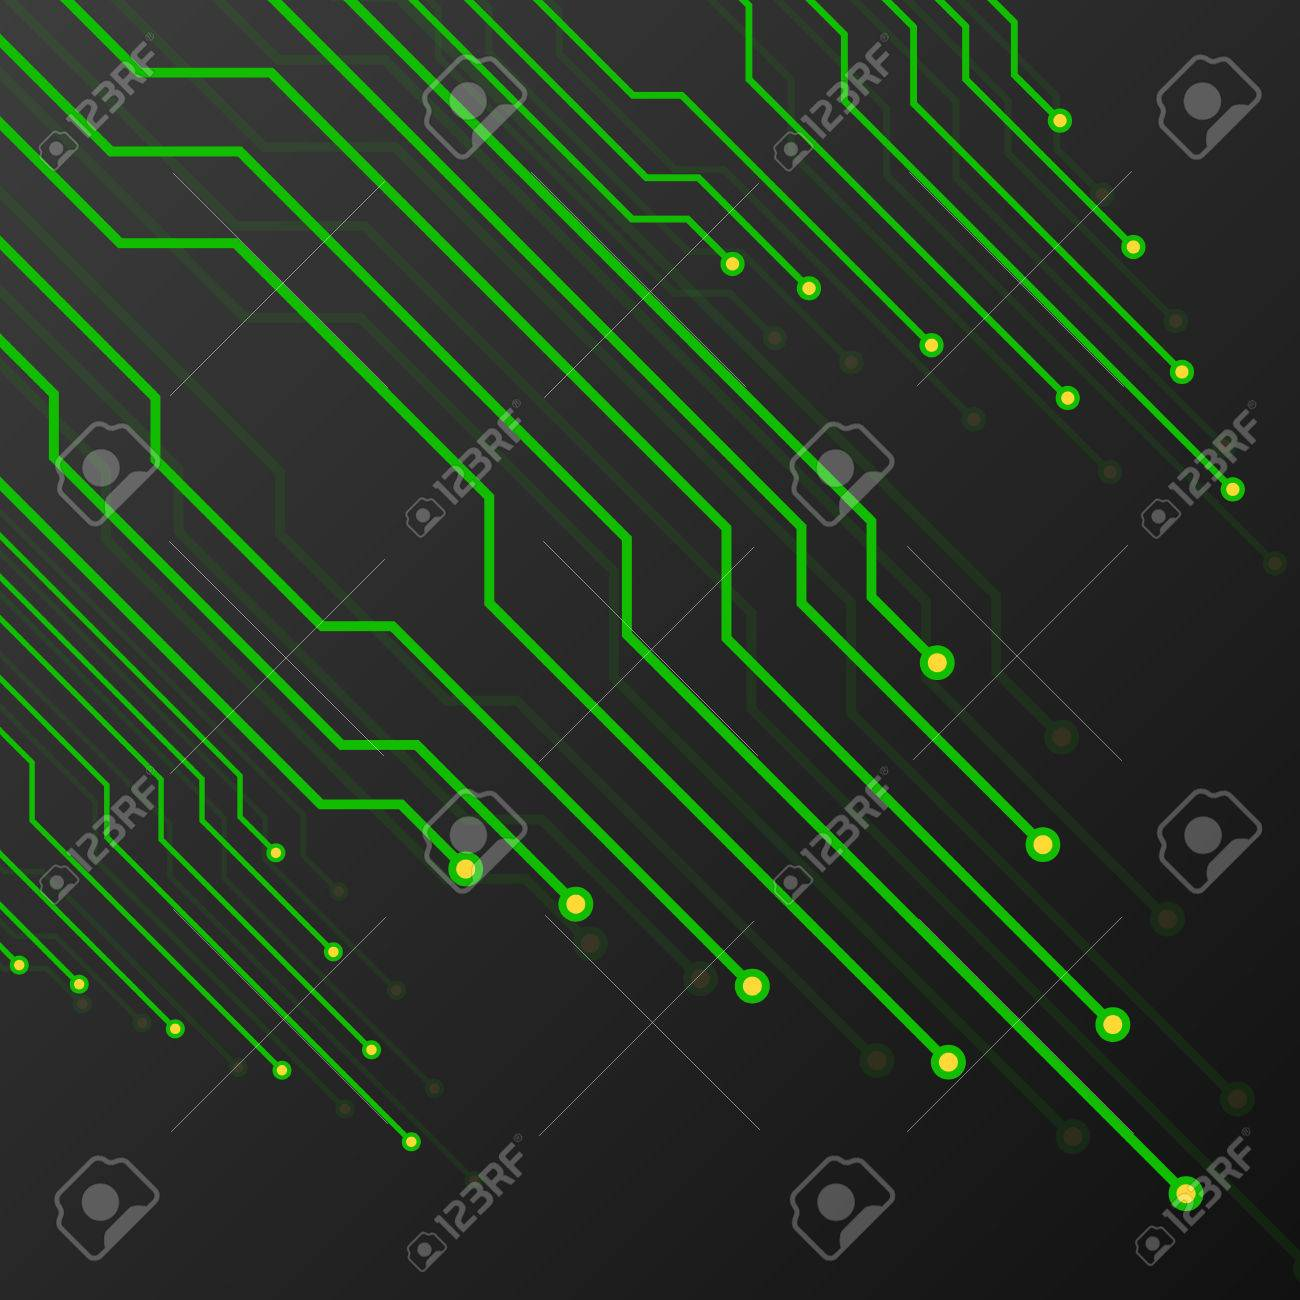 Black Circuit Board Pattern Wallpaper Electronics Green Picture Frame By Robyriker On Background Abstract Technology Royalty Free